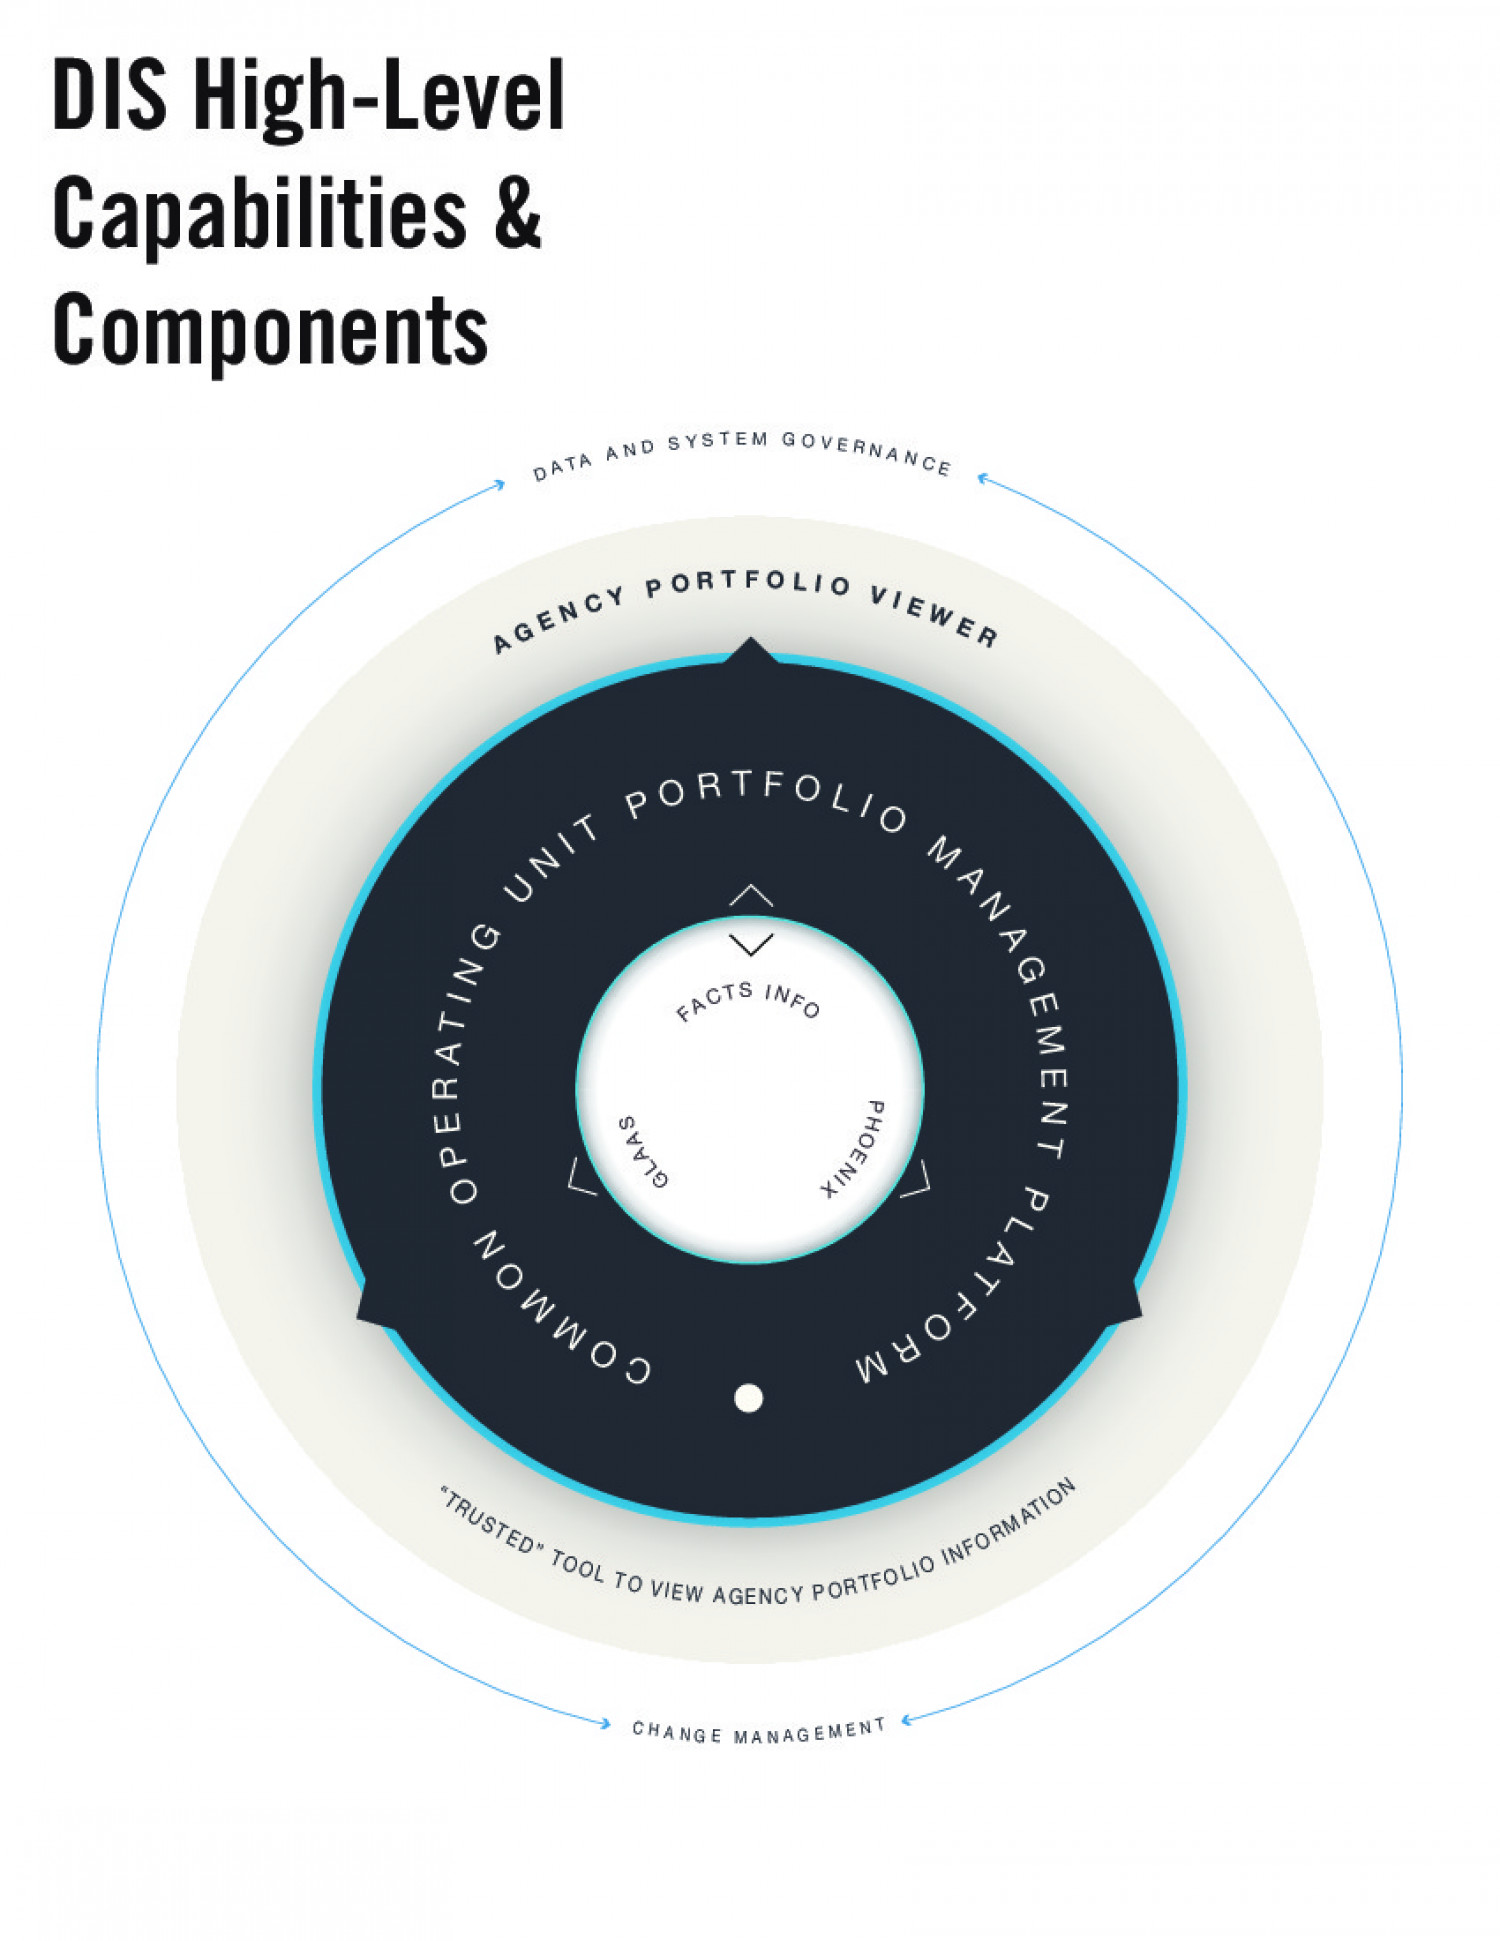 DIS High-Level Capabilities & Components Infographic